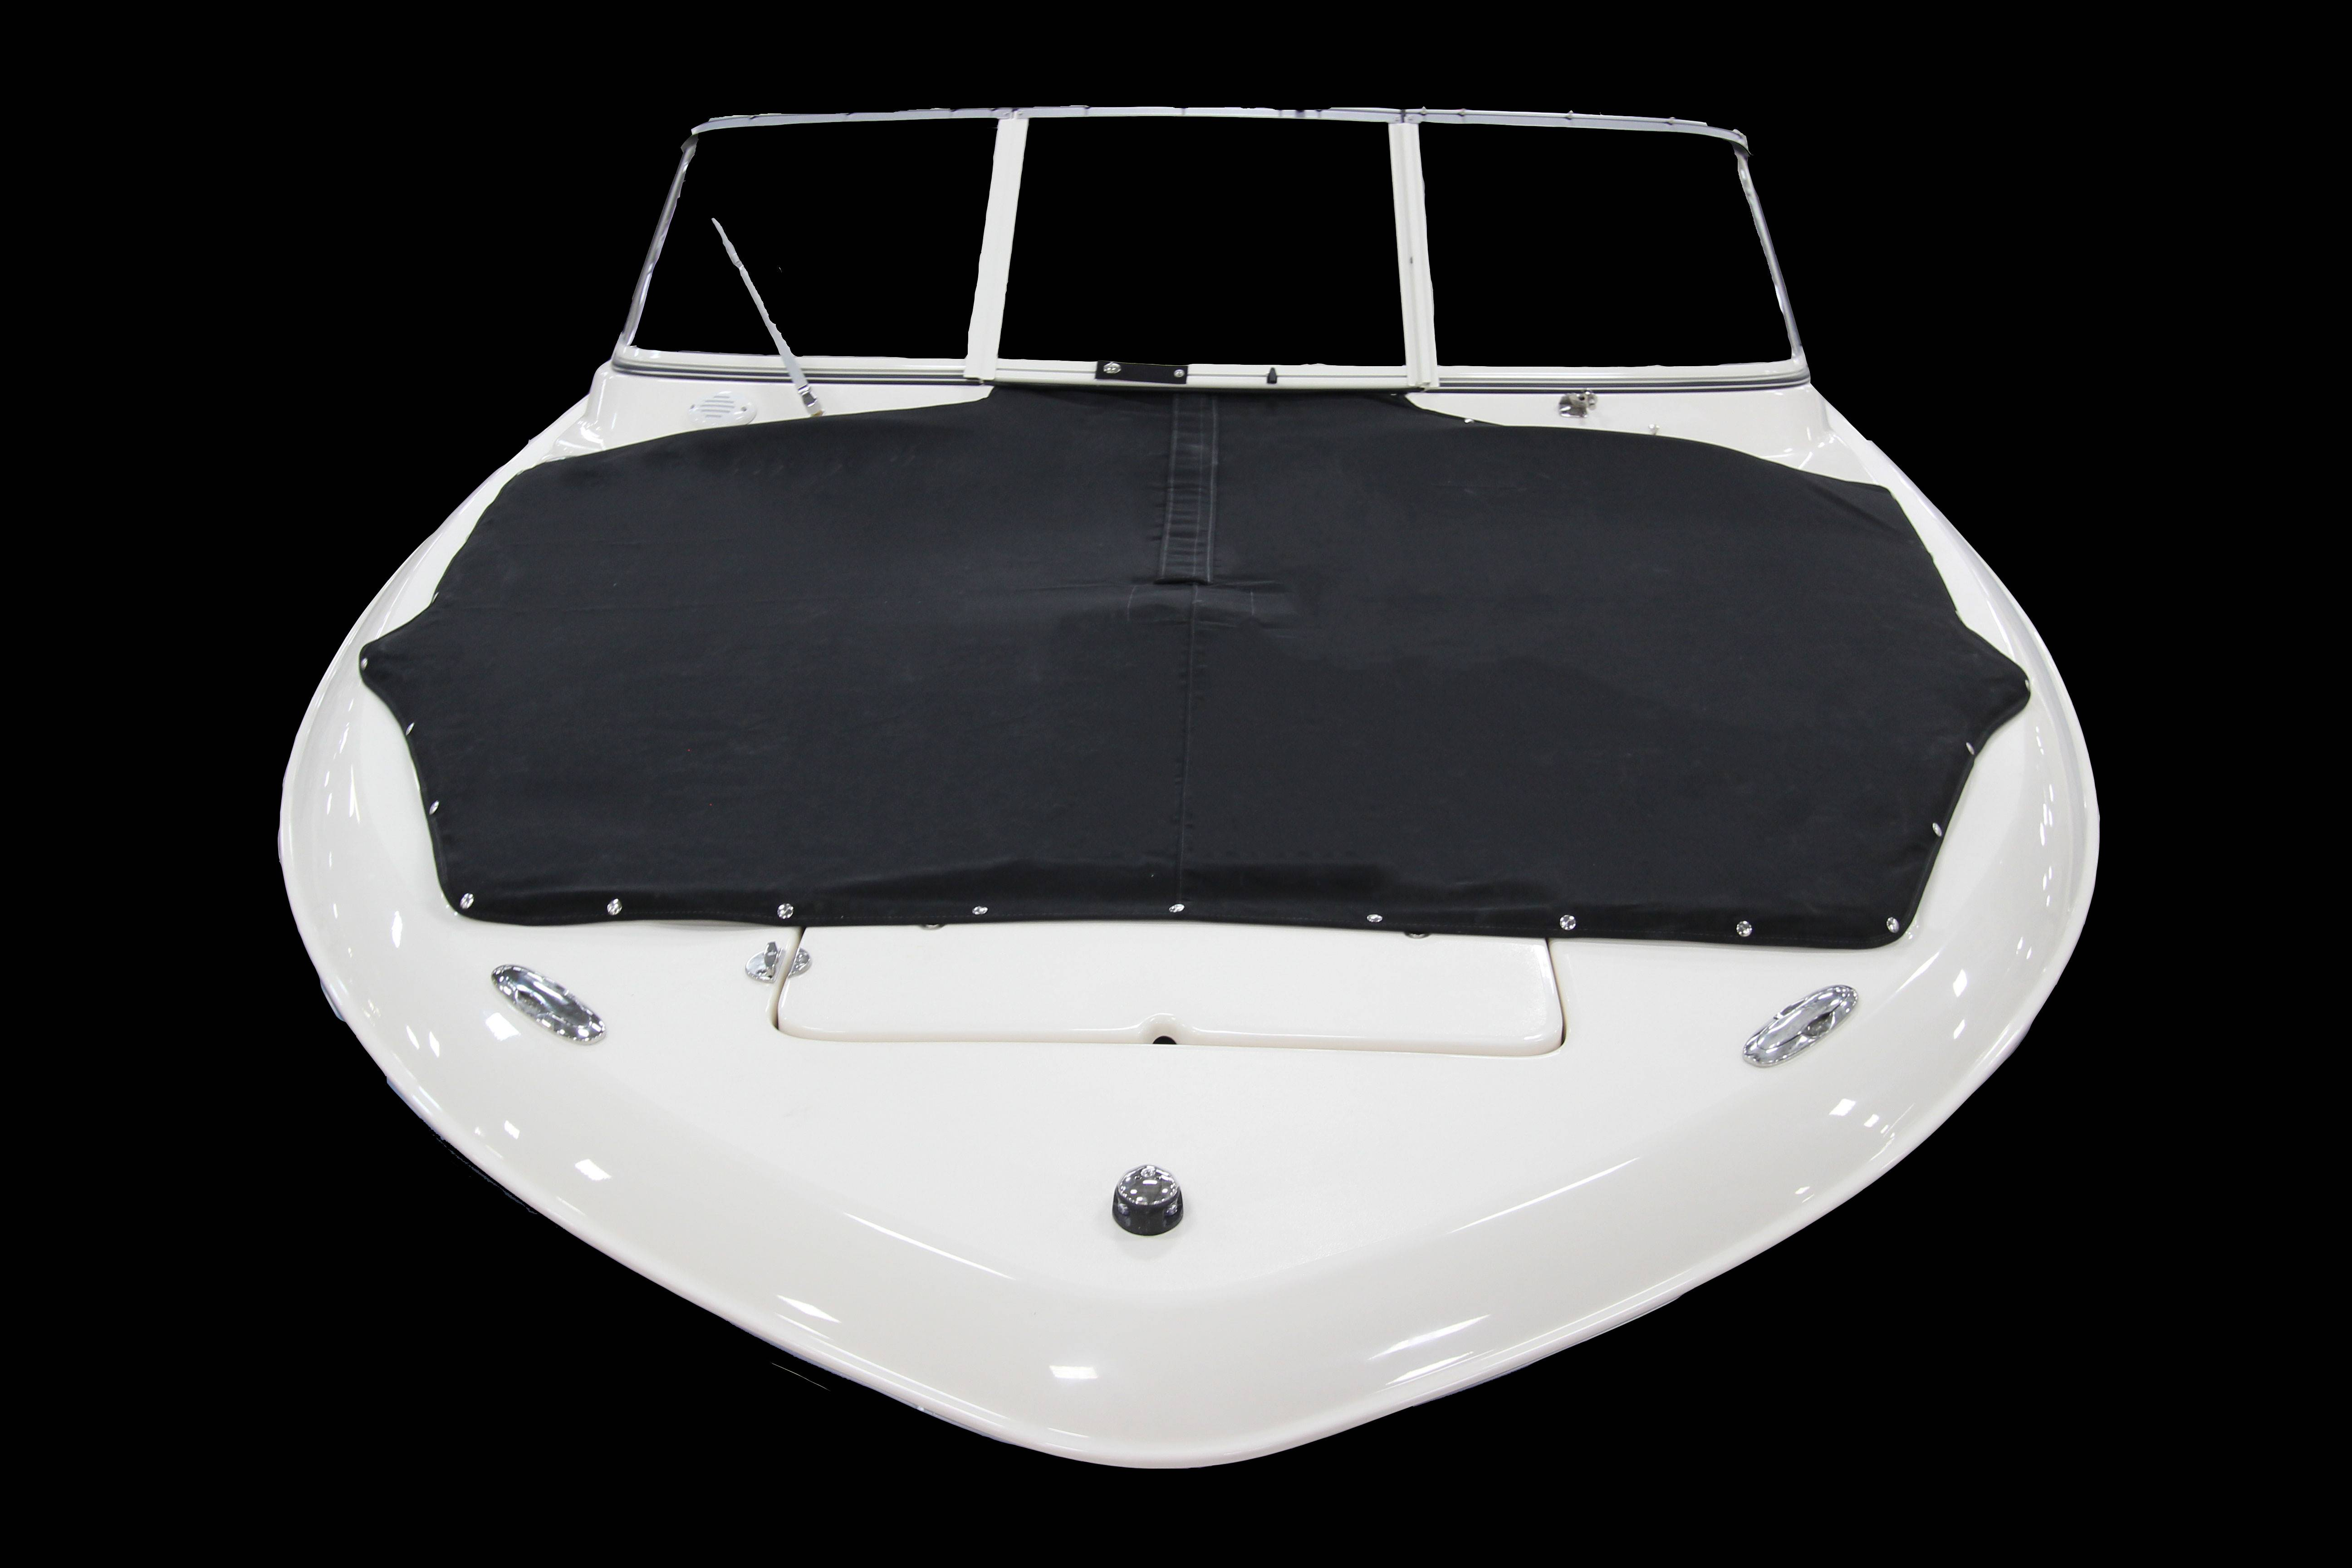 Grady-White Freedom 215 21-foot dual console black bow cover